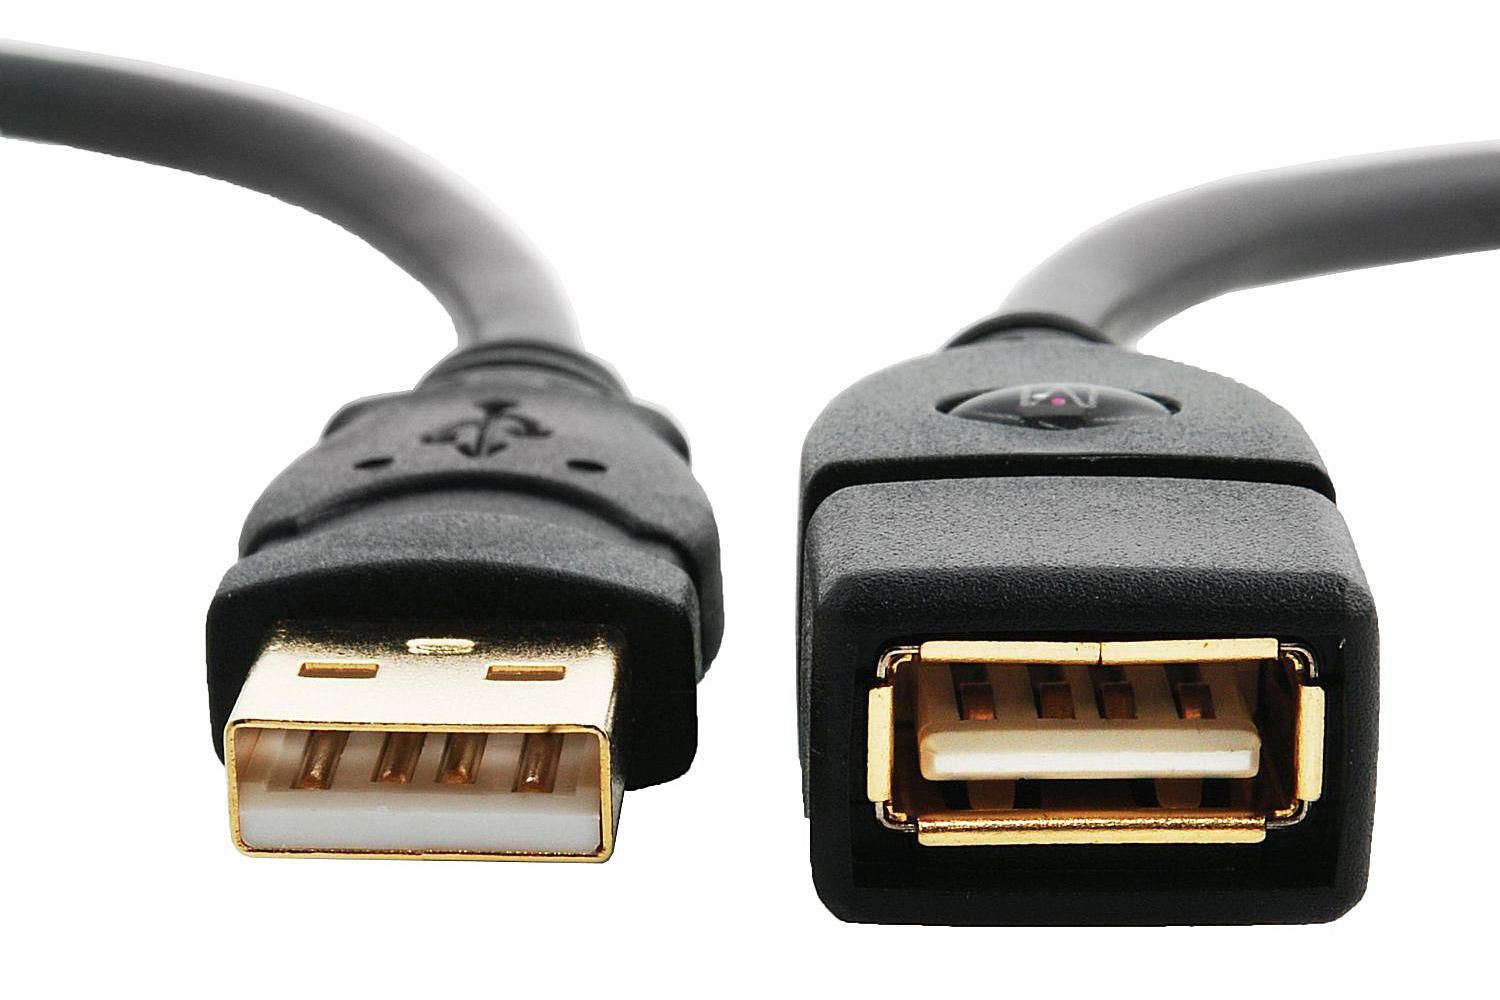 Usb Physical Compatibility Chart 30 20 11 Connector Types